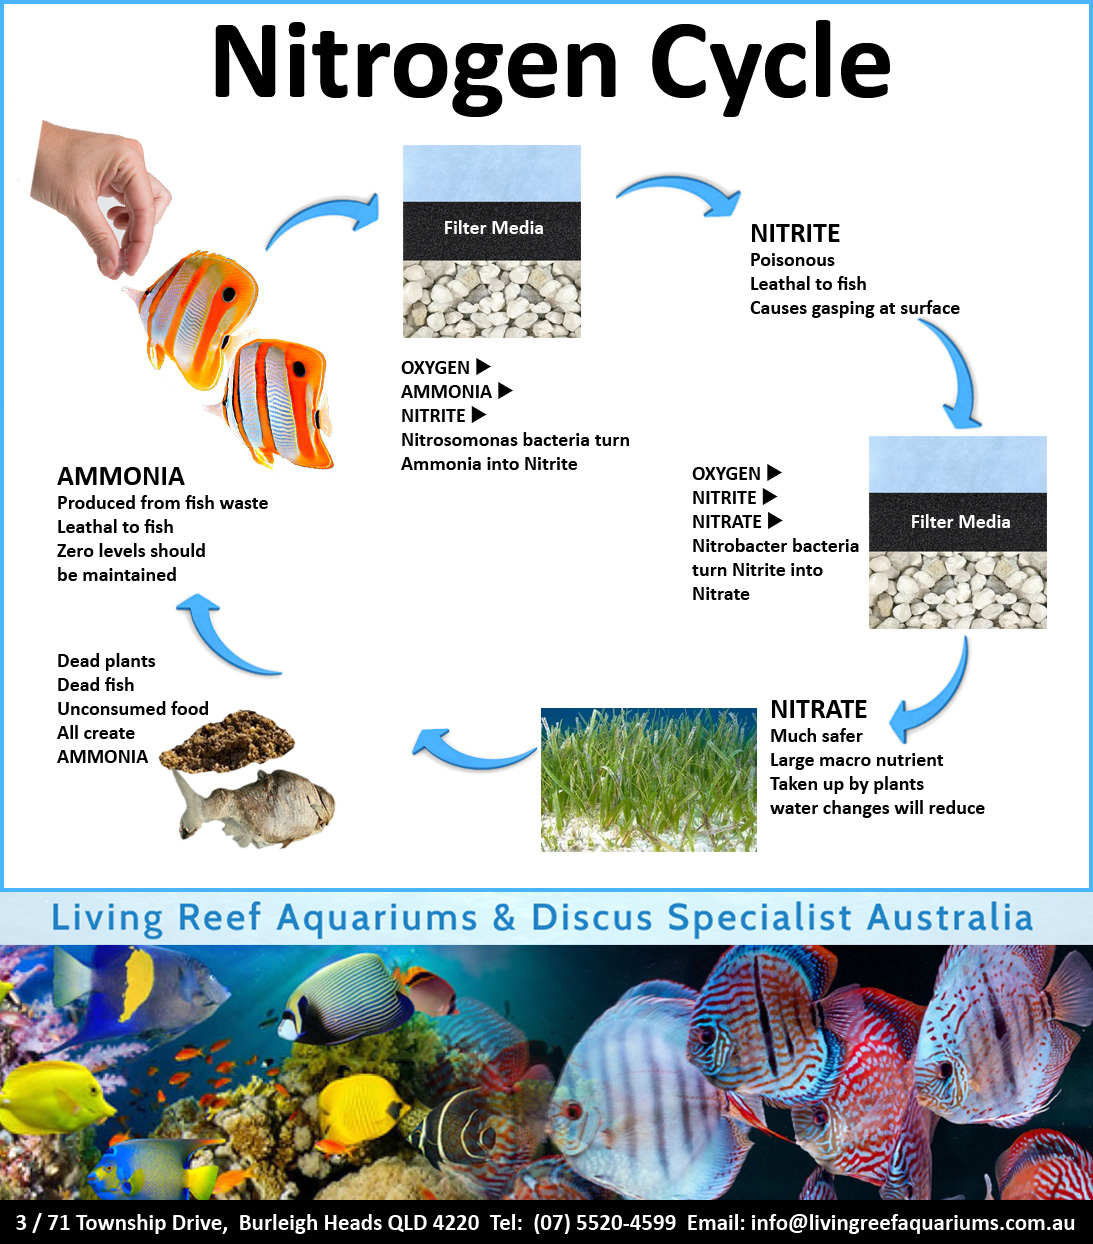 How to set up a saltwater aquarium living reef aquariums for High nitrite in fish tank